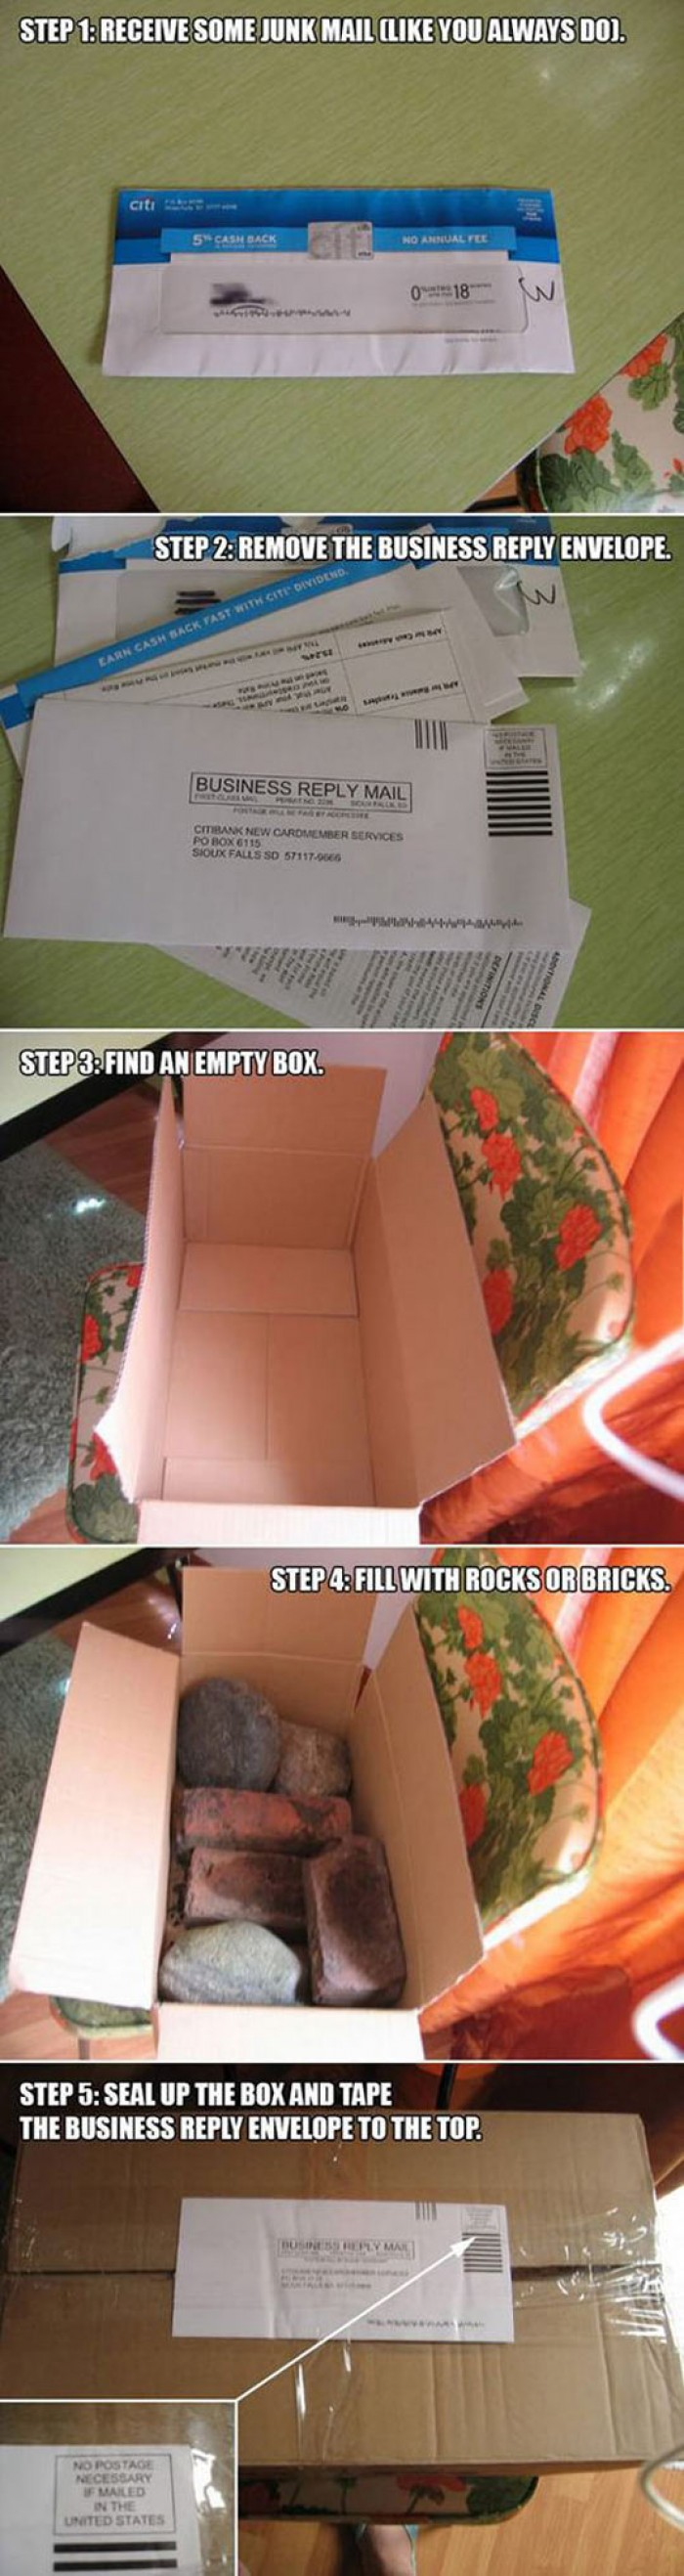 Things To Do With Junk Mail.